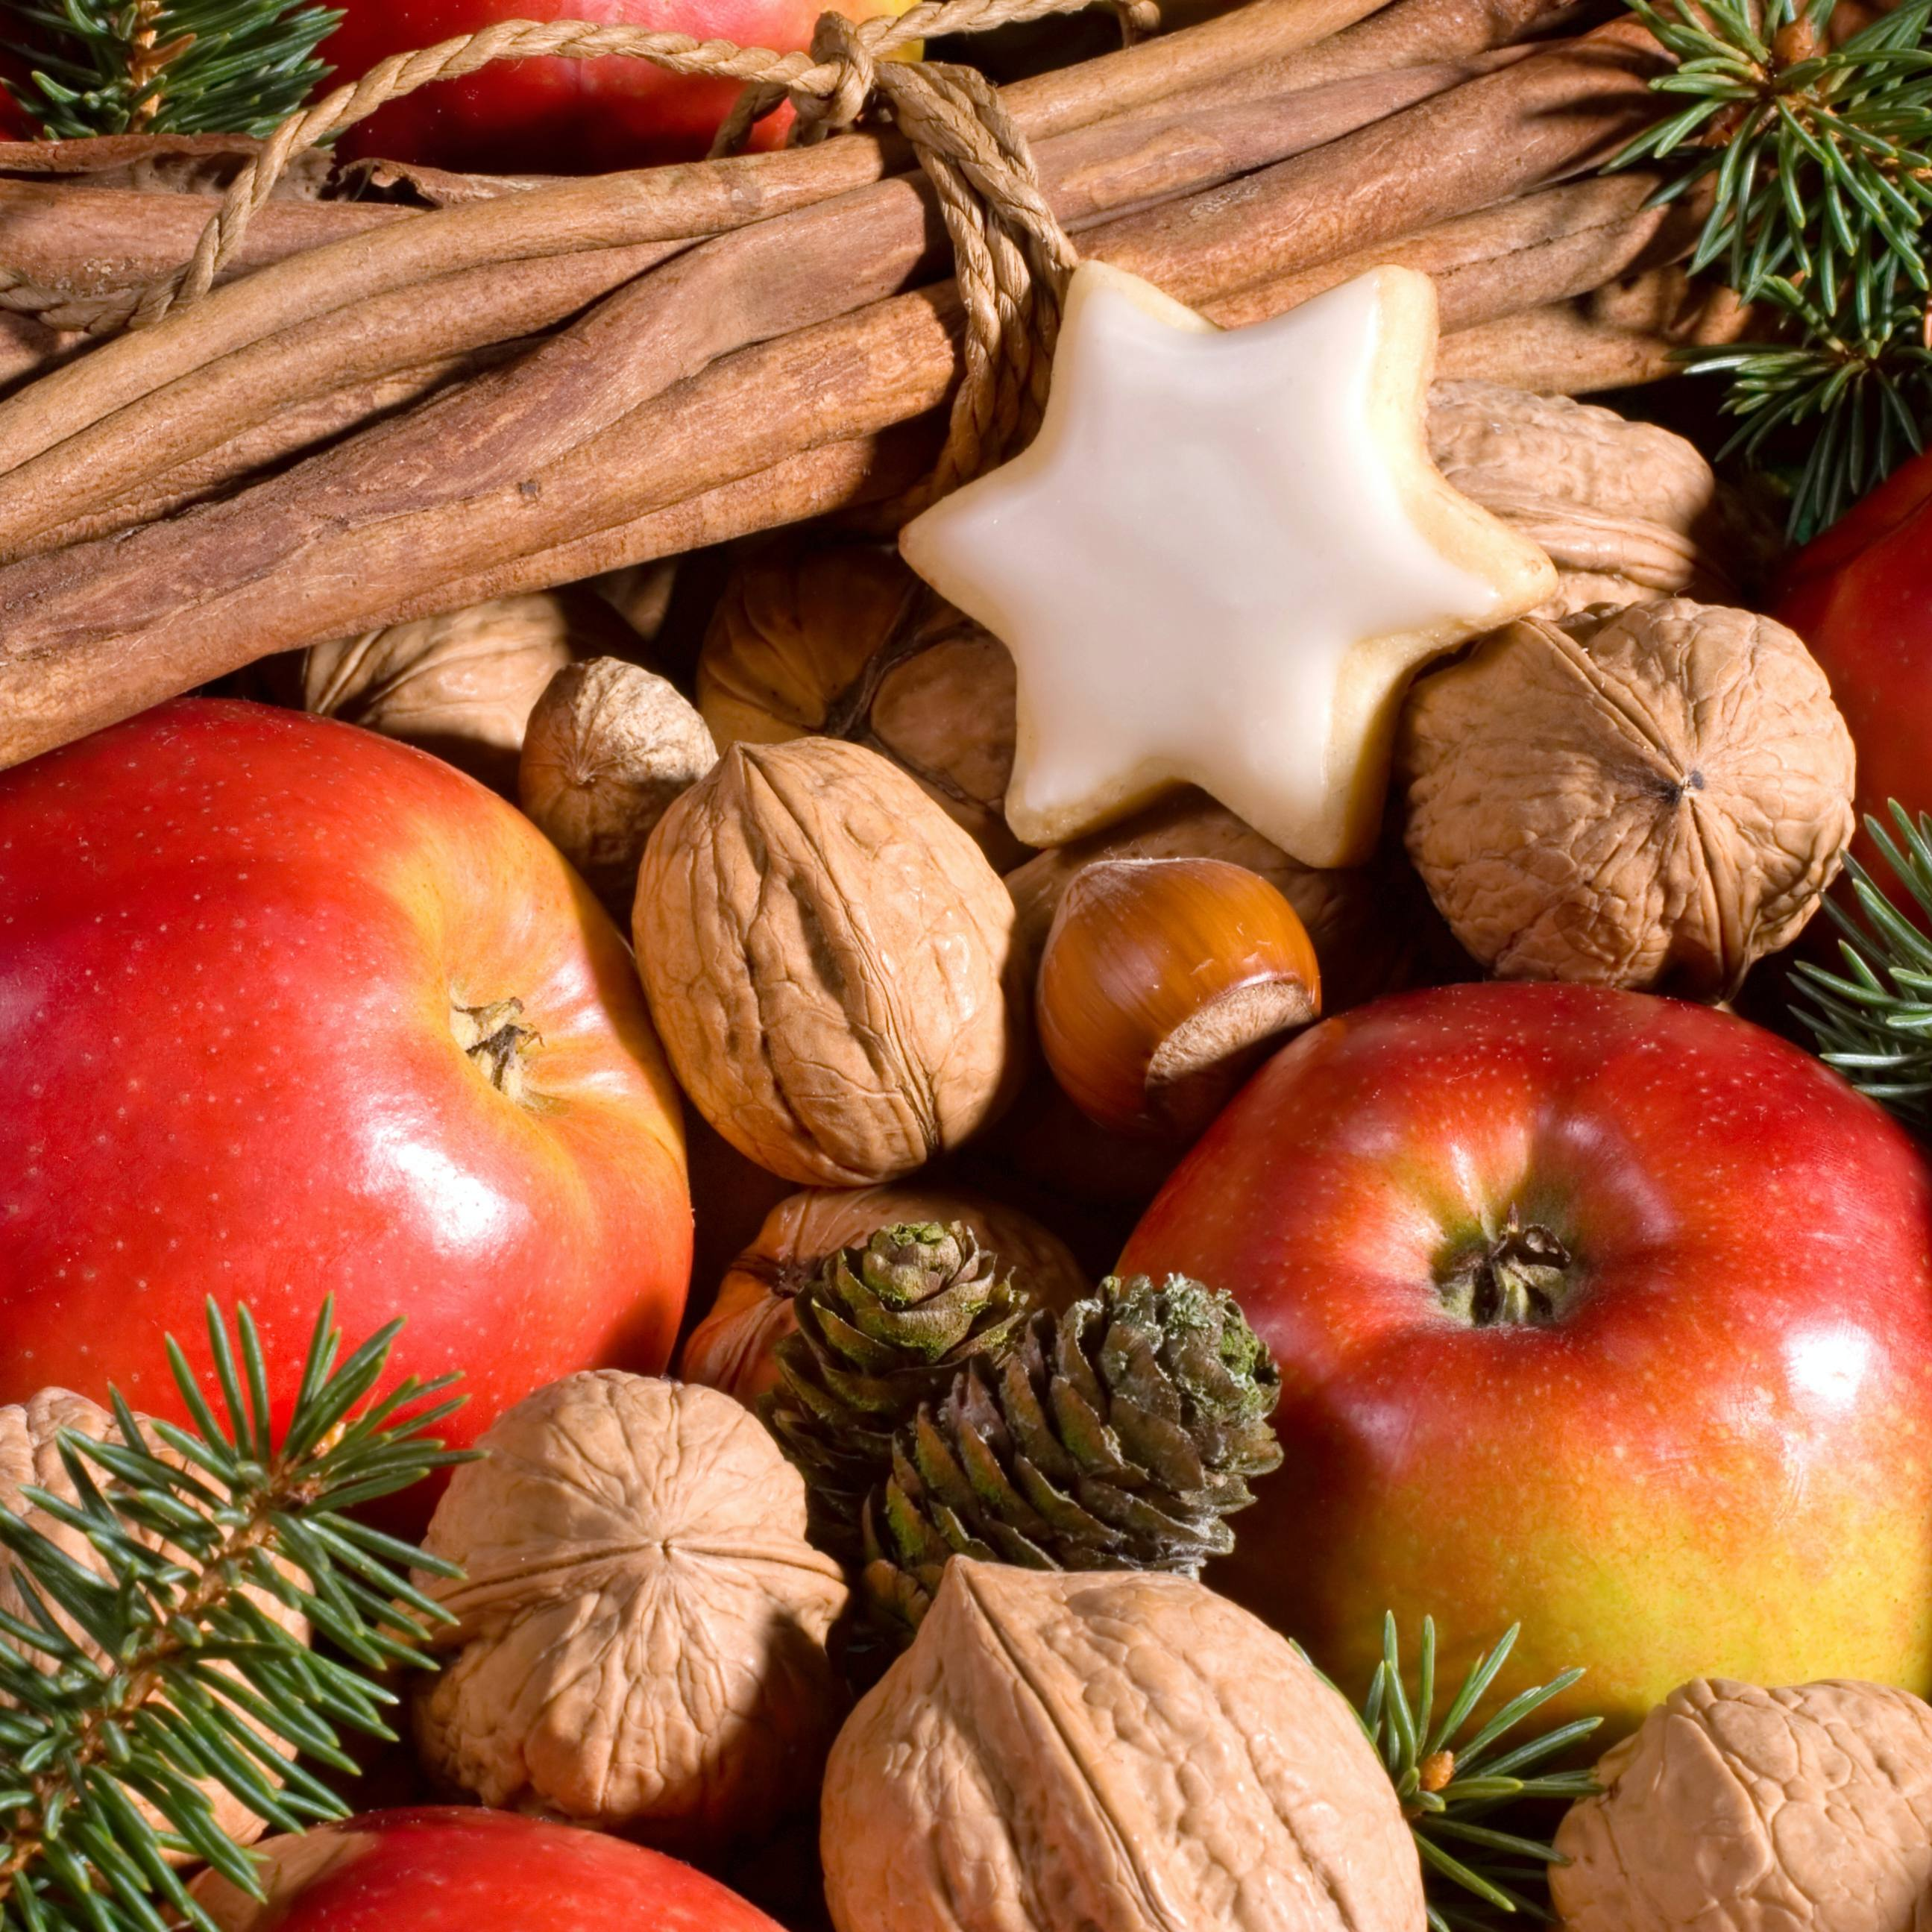 a festive arrangement of fresh apples, with walnuts and cinnamon sticks and evergreen branches